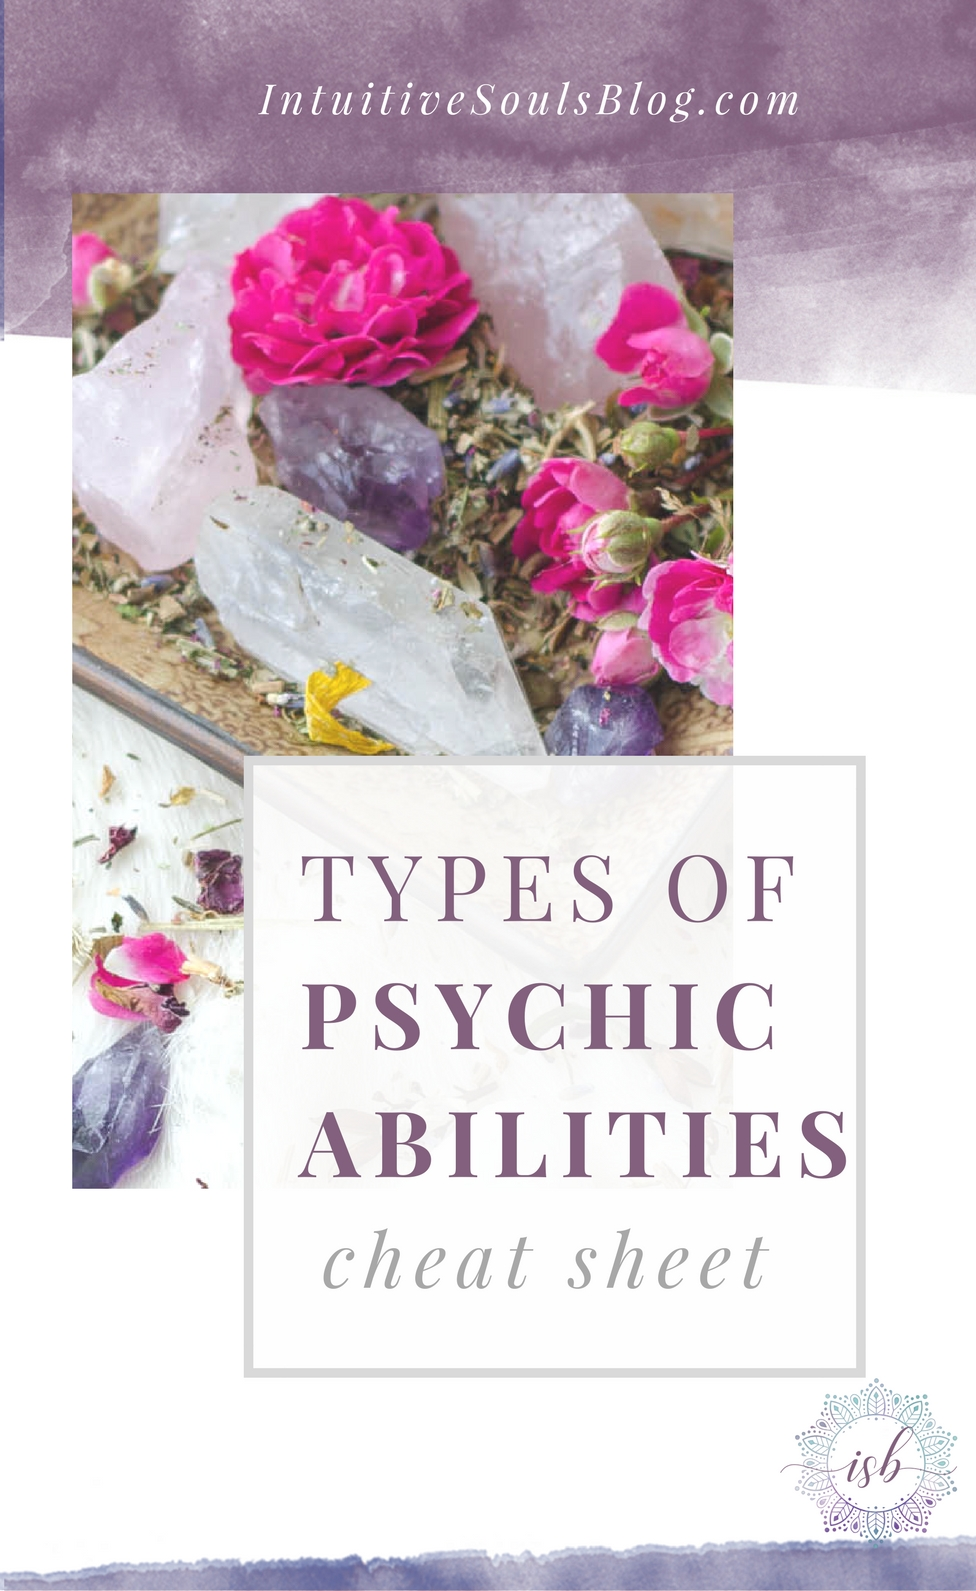 The 4 main types of psychic abilities explained in a super simple way for the beginner psychic. Plus, 2 intuitive gifts that hardly anyone talks about. This